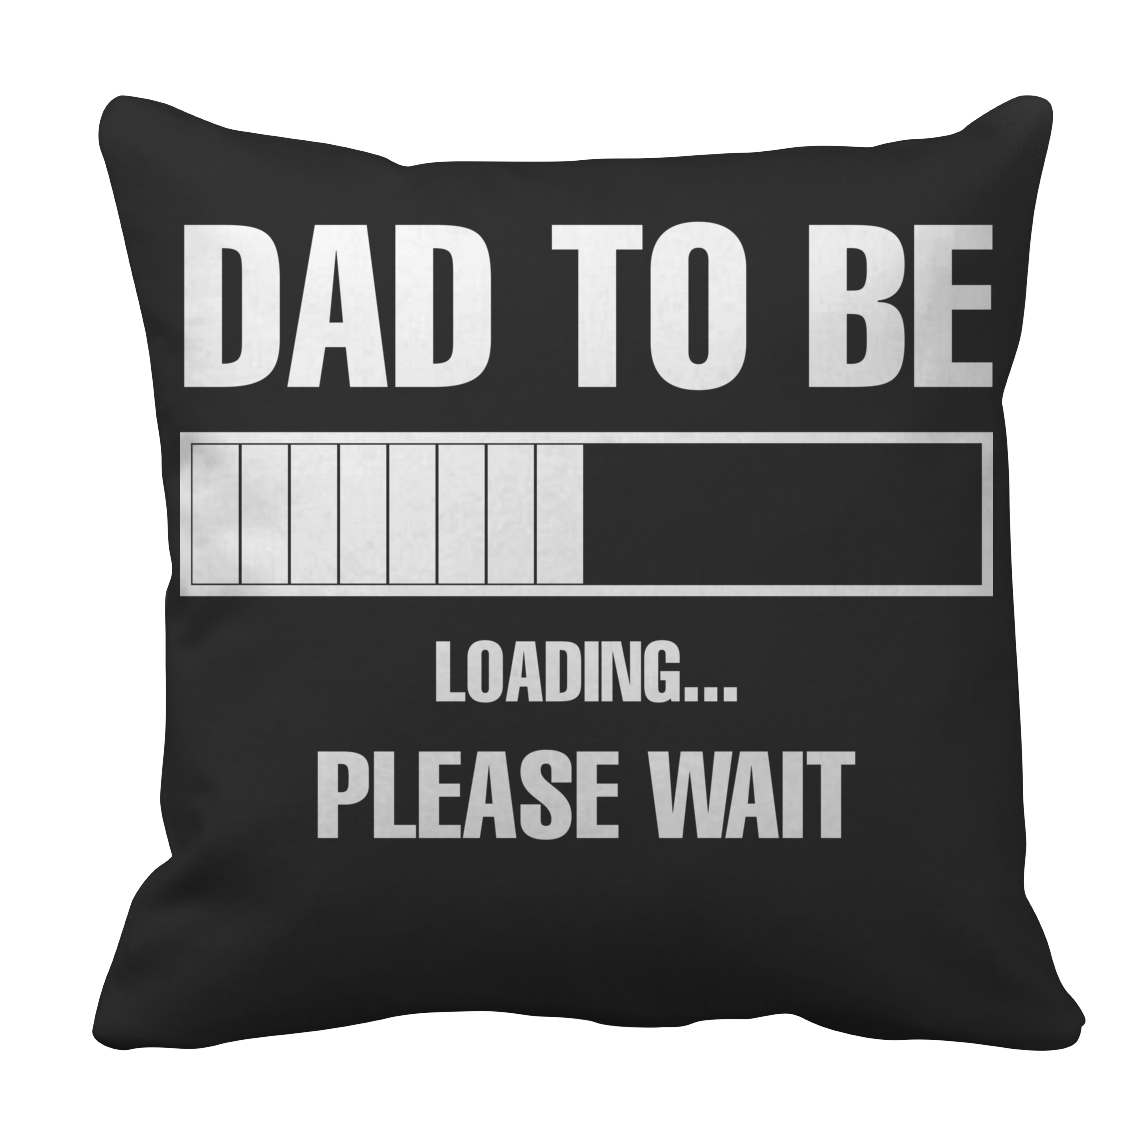 Dad To Be Loading